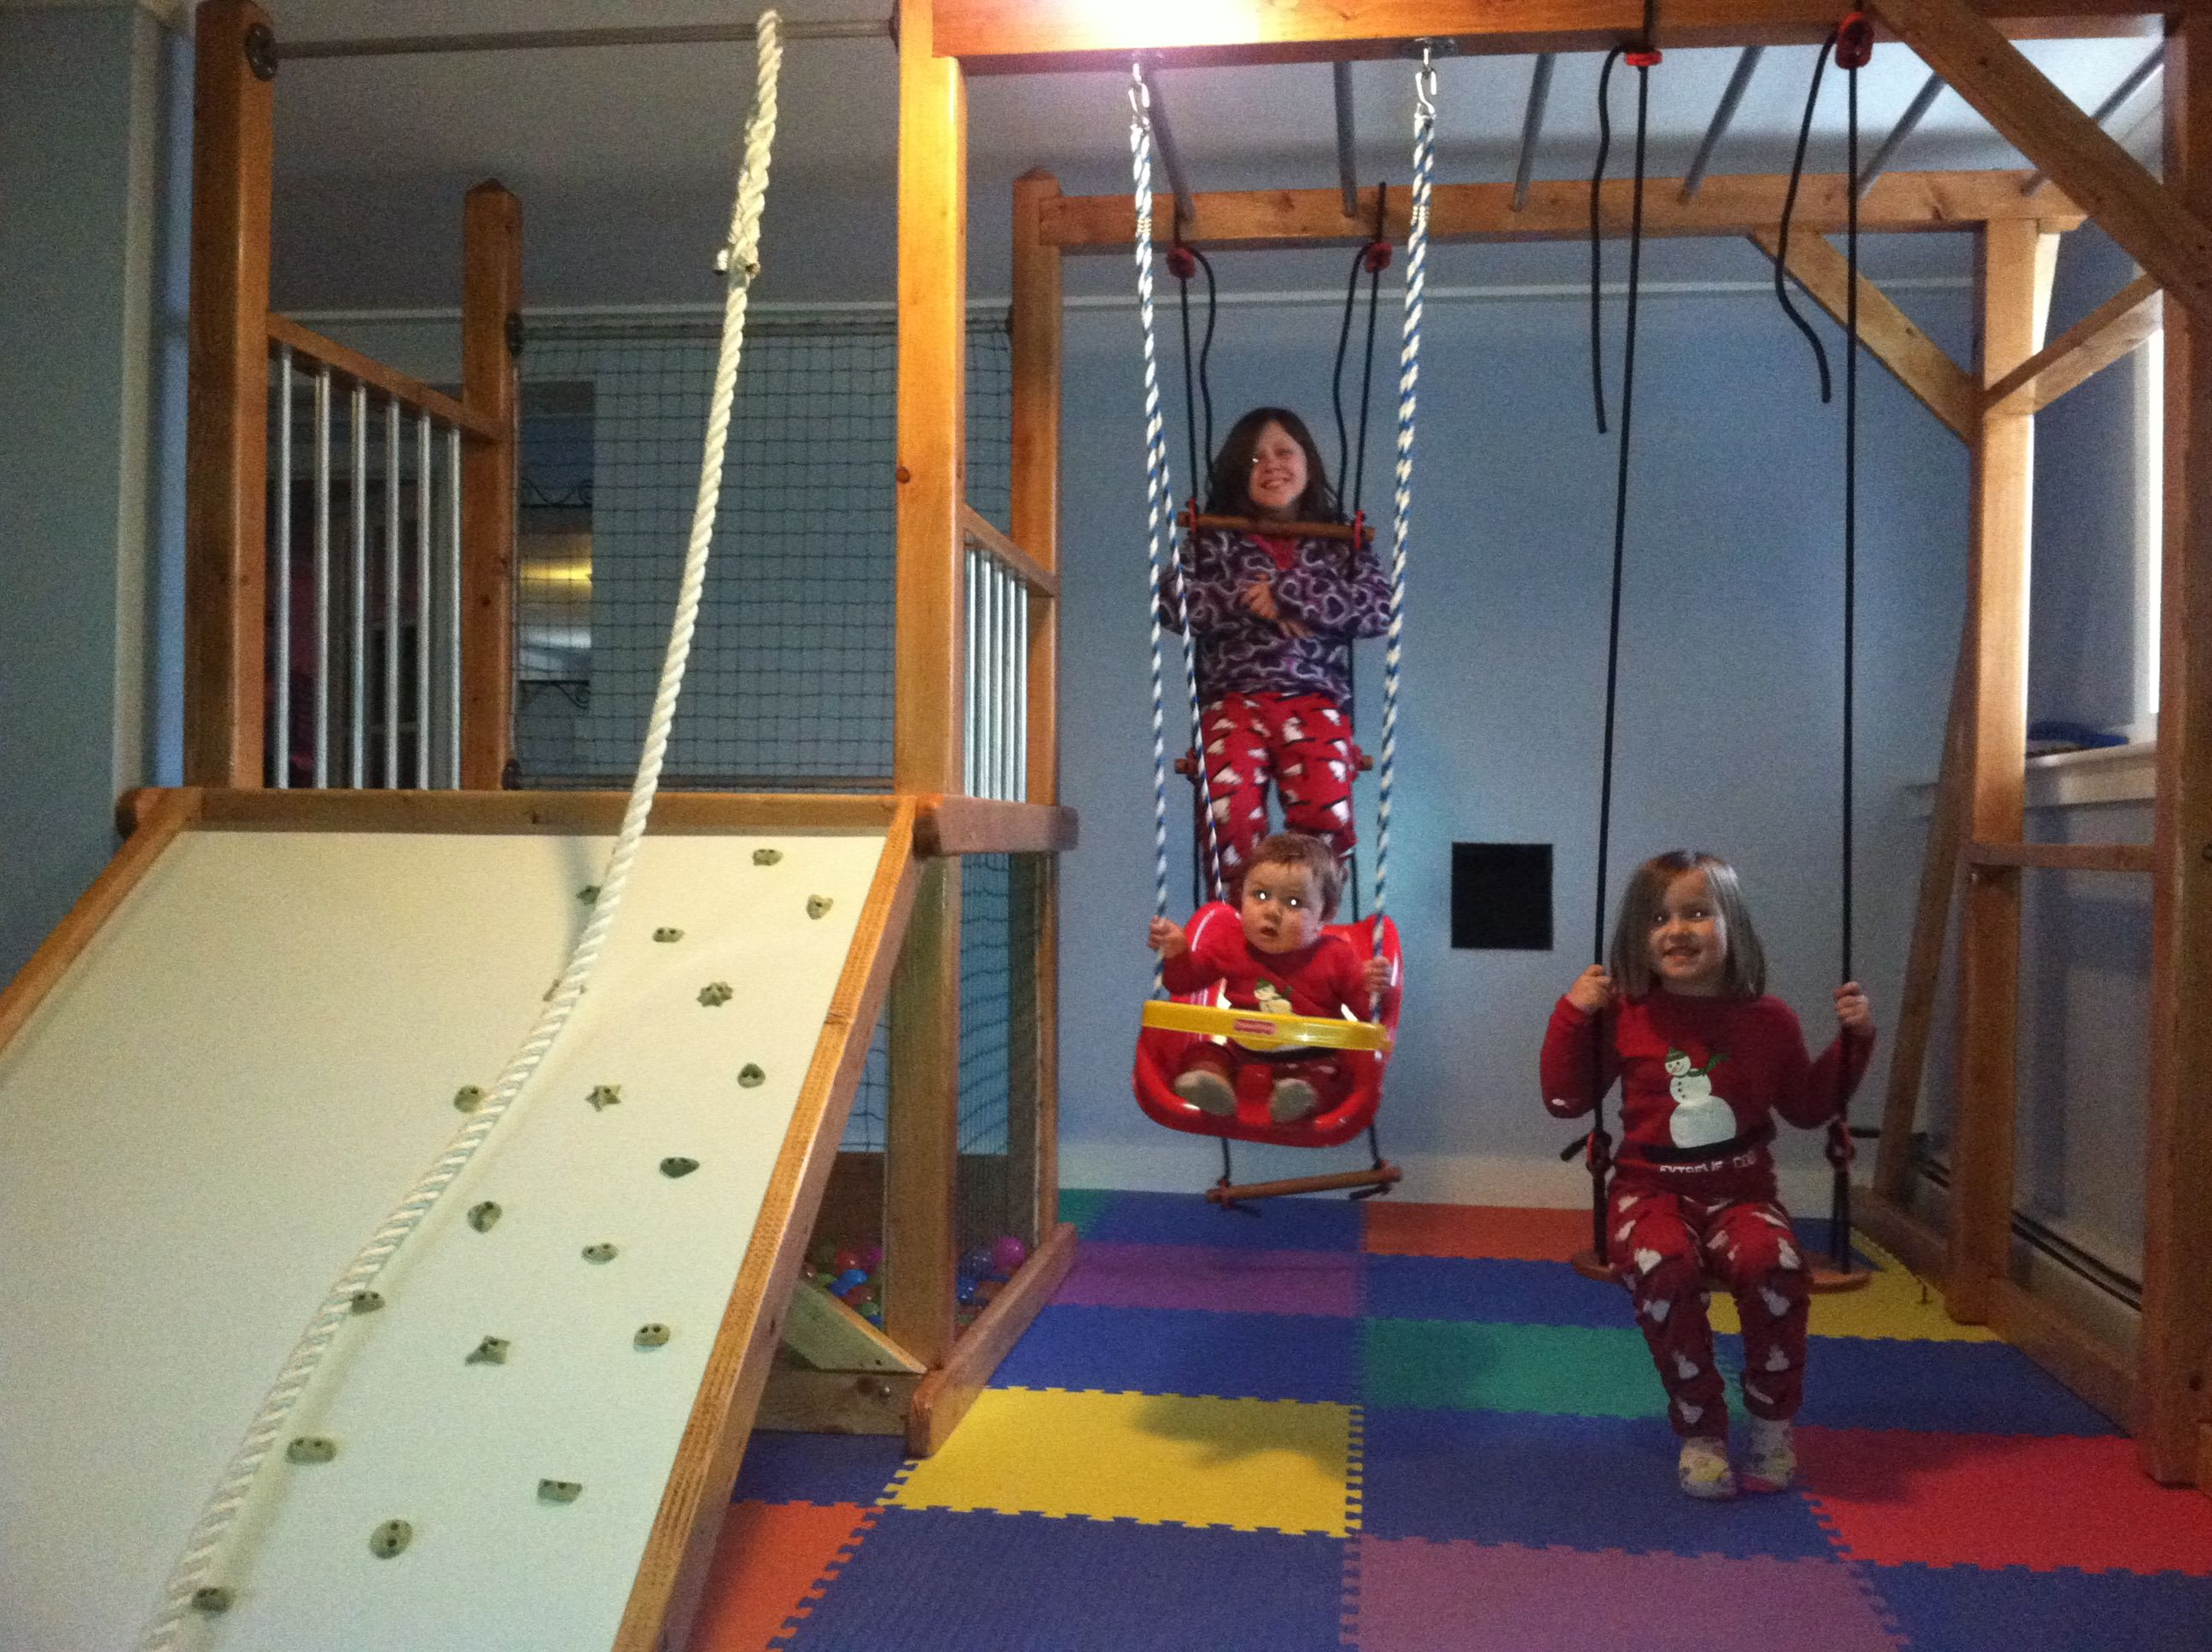 Indoor playground this would be perfect for the cold rainy days